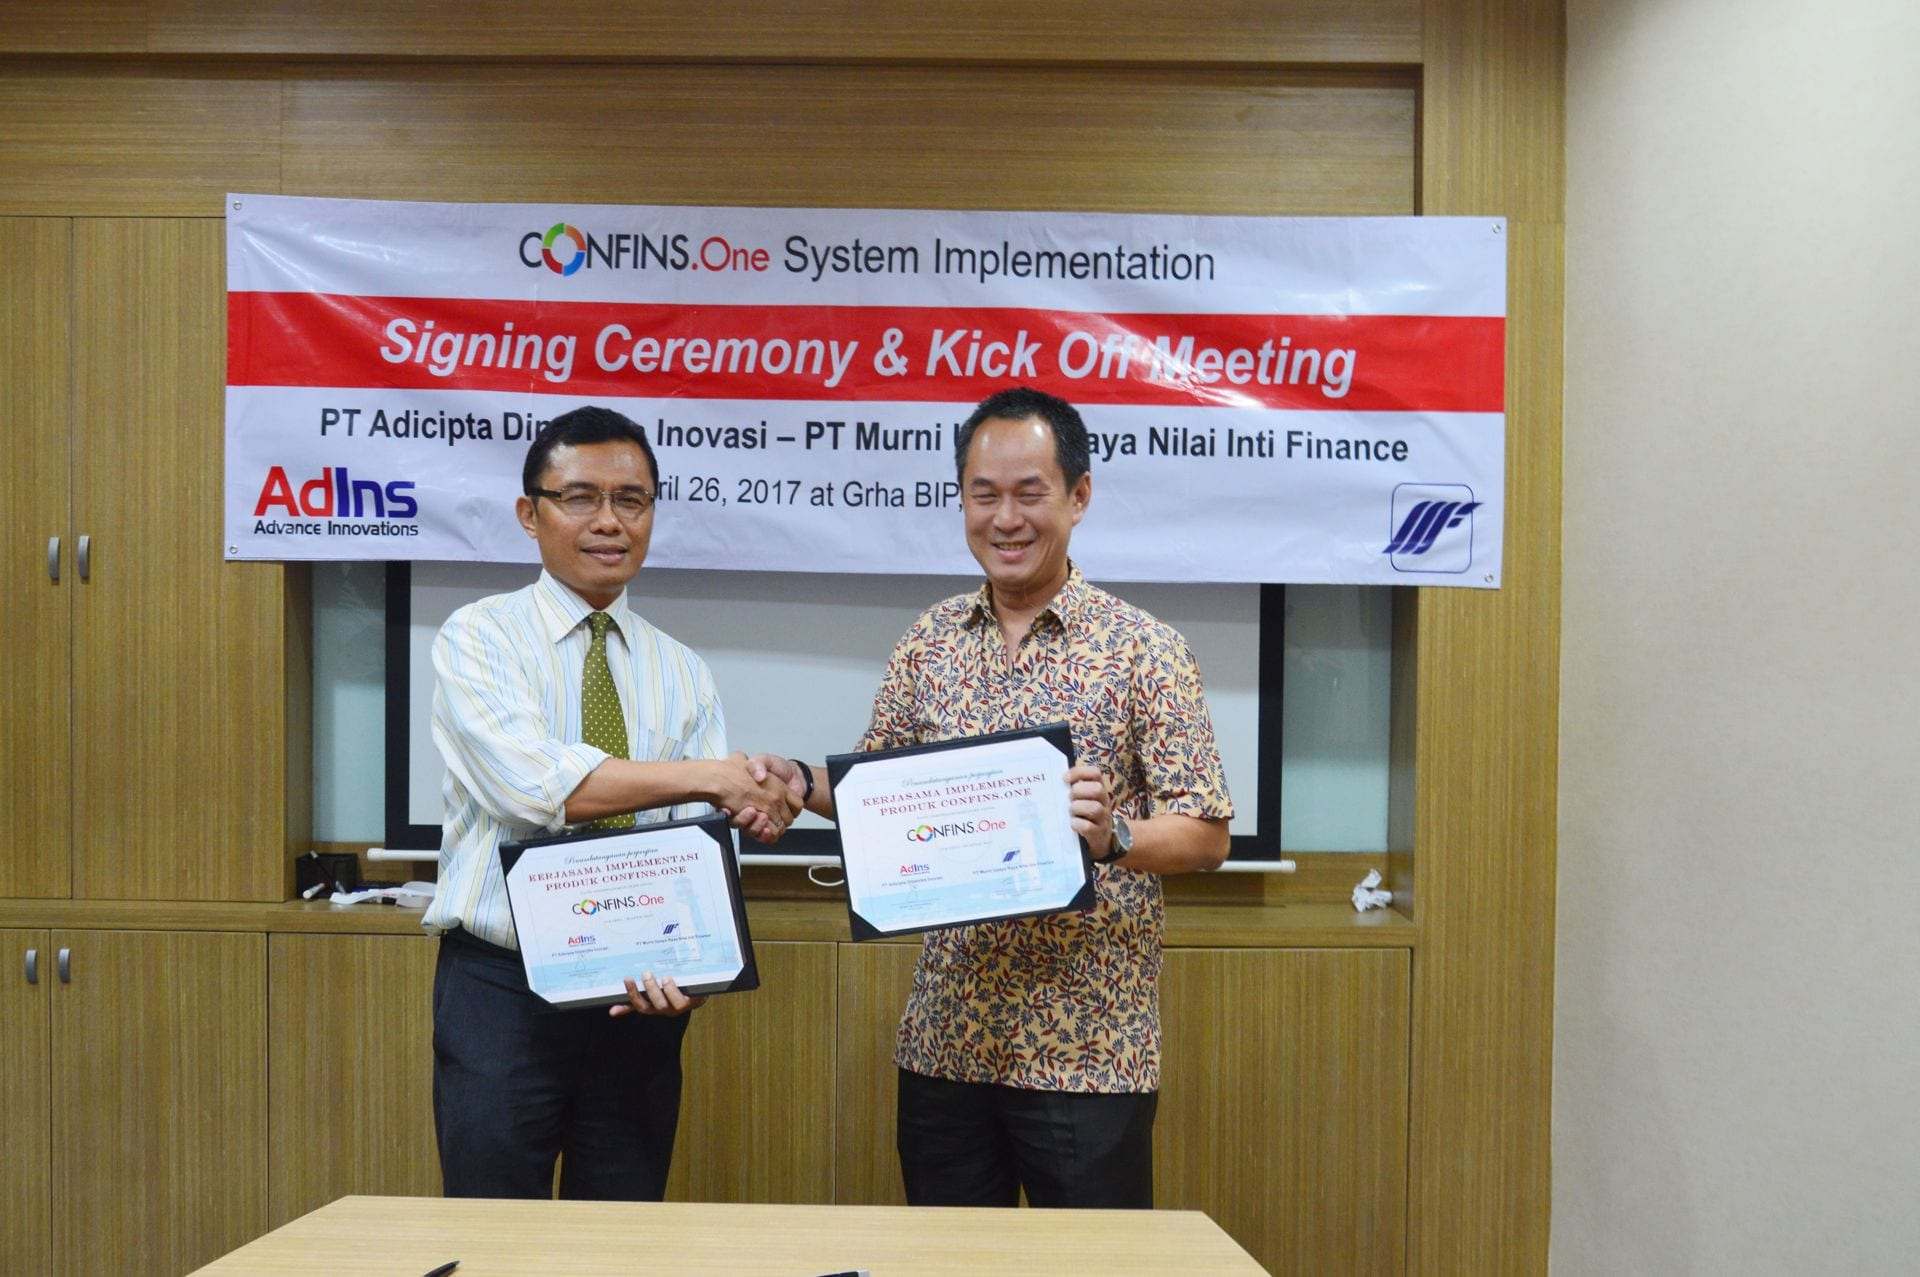 CONFINS.One System Implementation Signing Ceremony and Kick Off Meeting With Murni Fiance